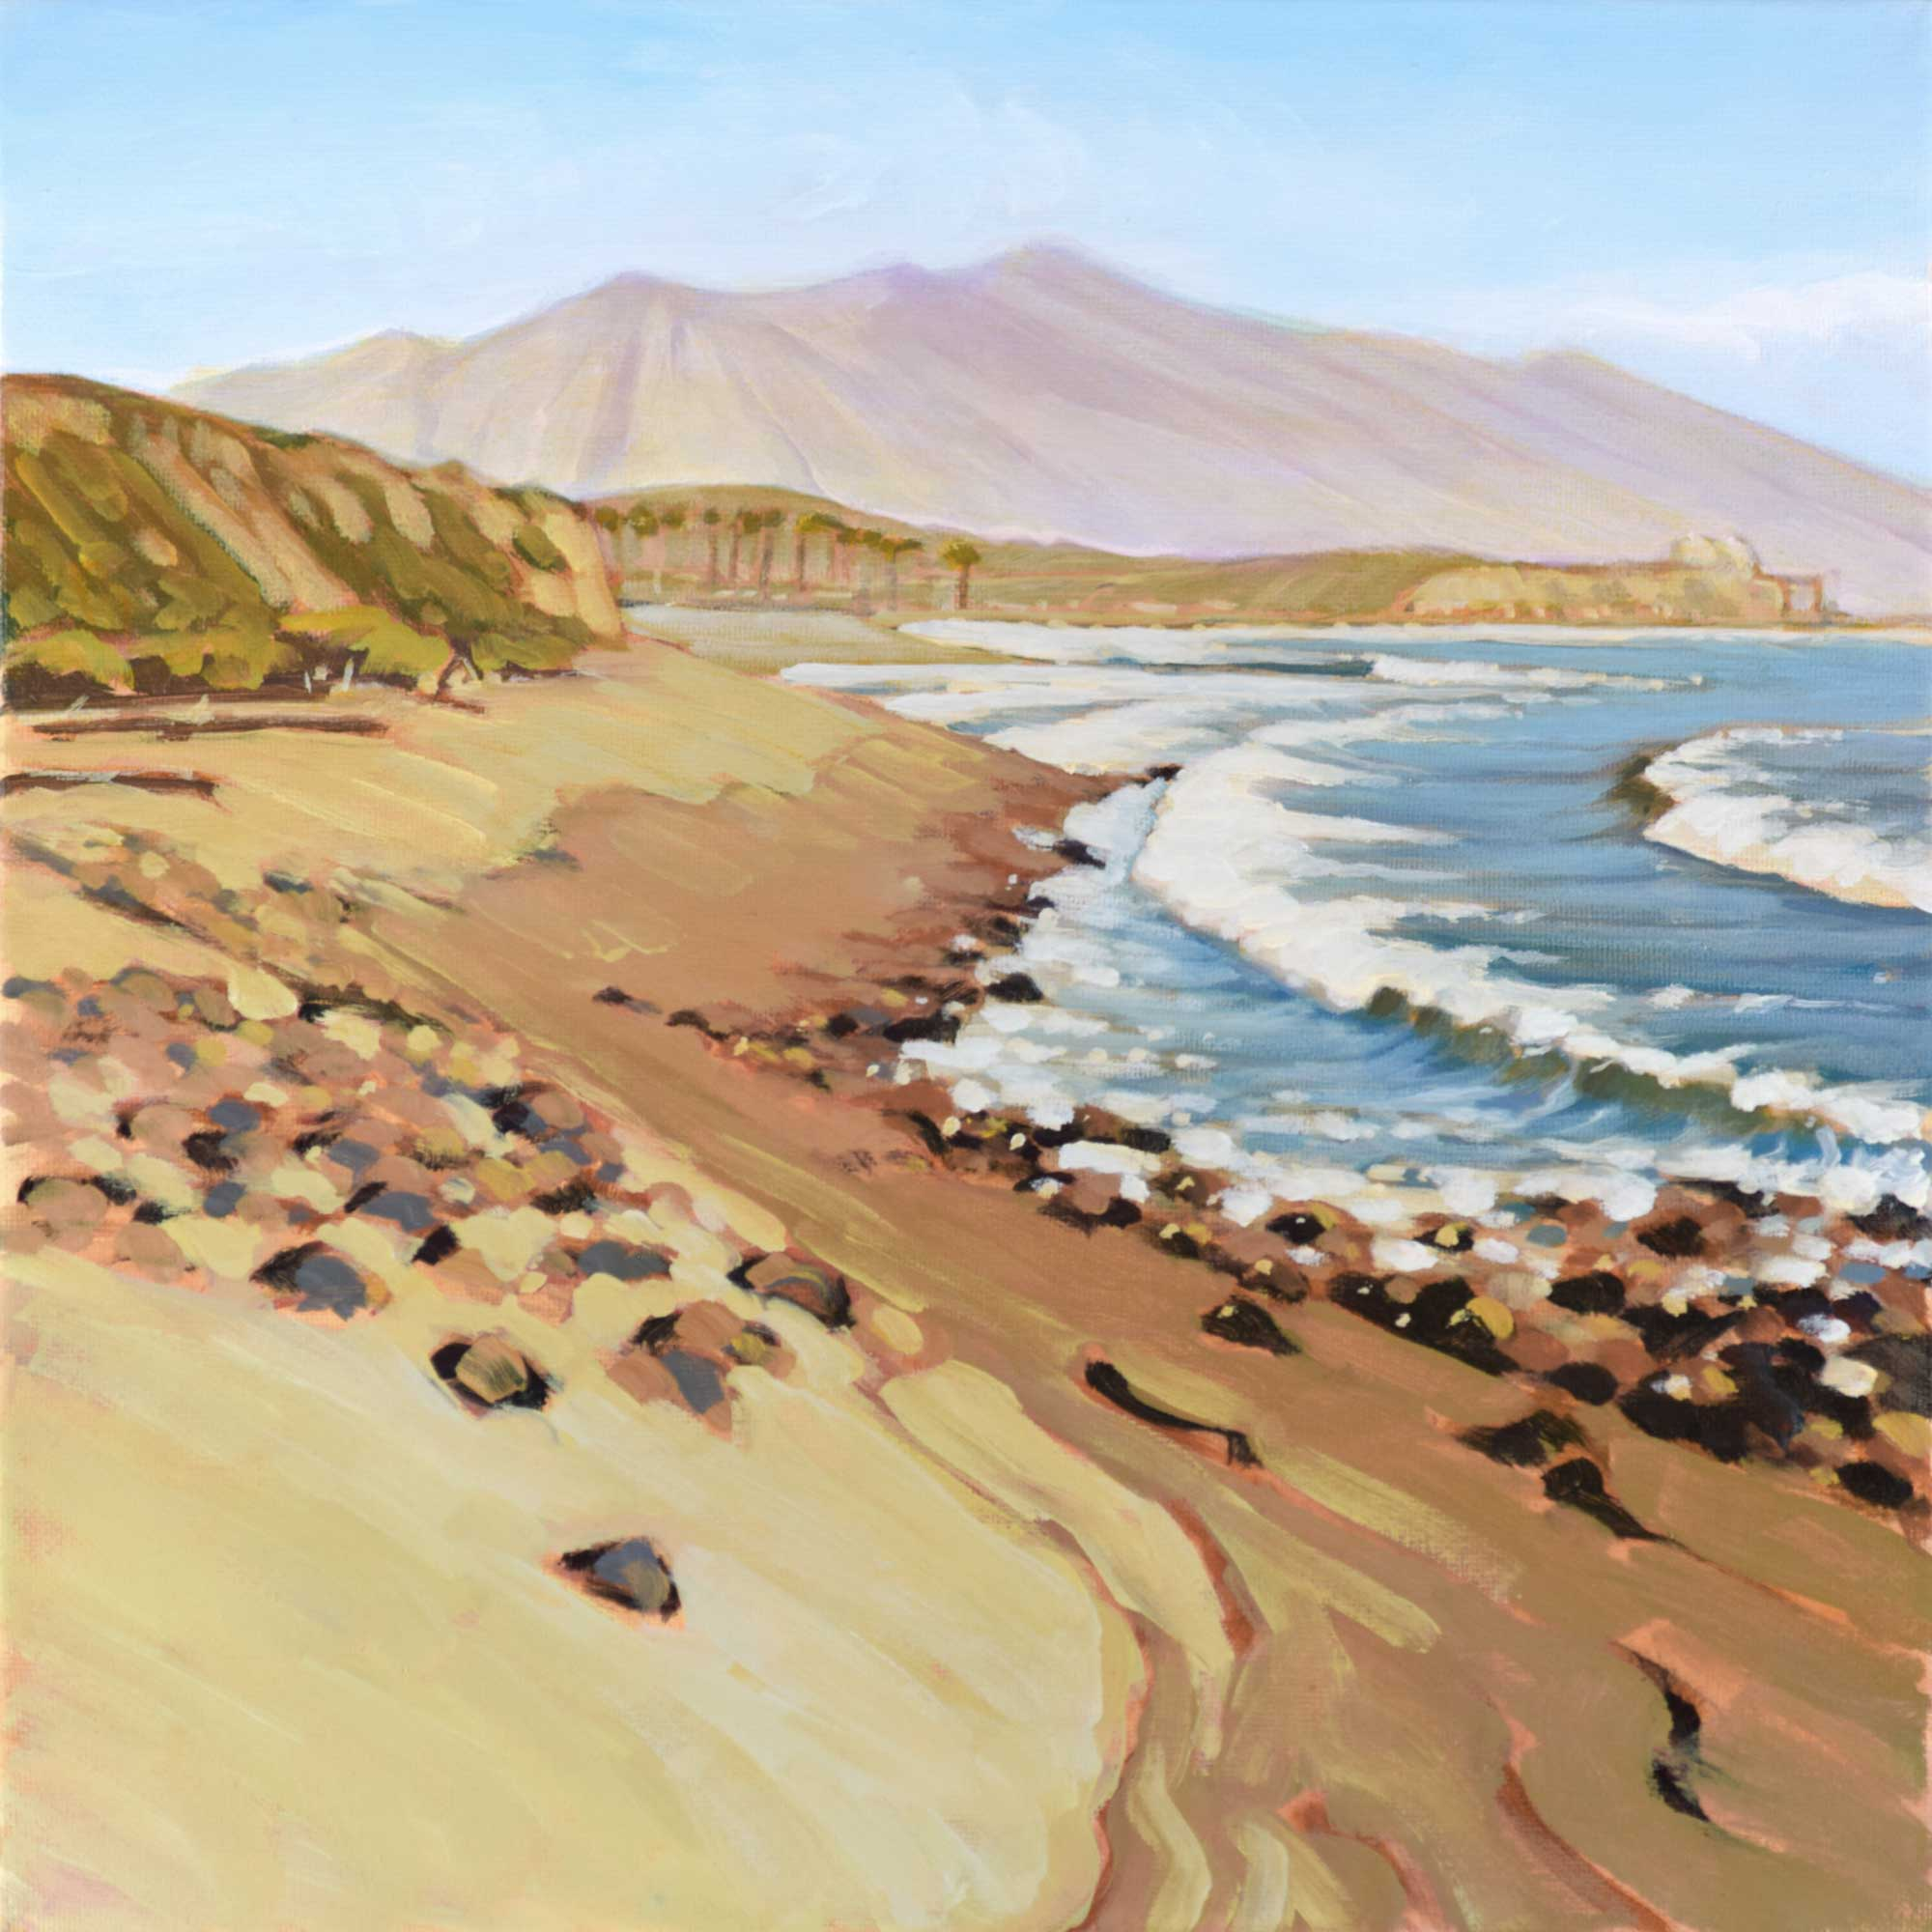 Plein air painting from the point at Lower Trestles looking toward San Onofre on the San Diego County coast of California